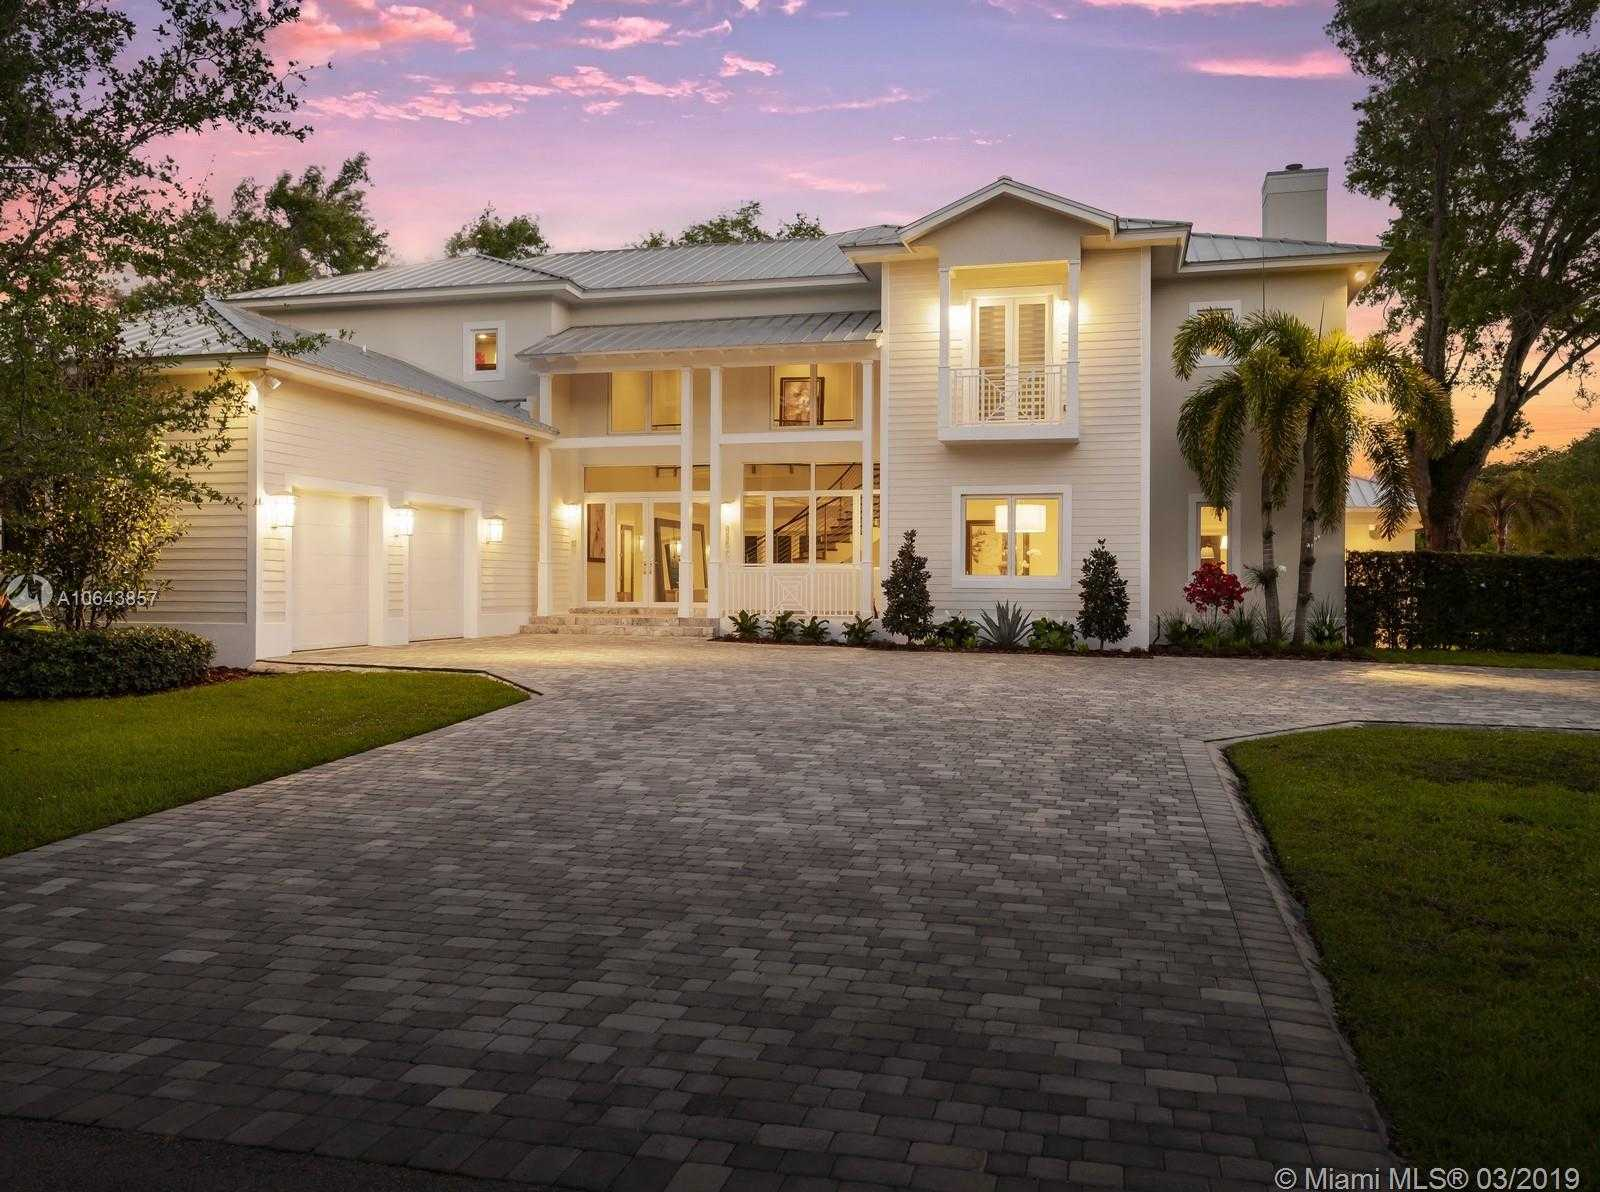 Homes for Sale in Kendall - John Taylor — Troubadour Realty Inc